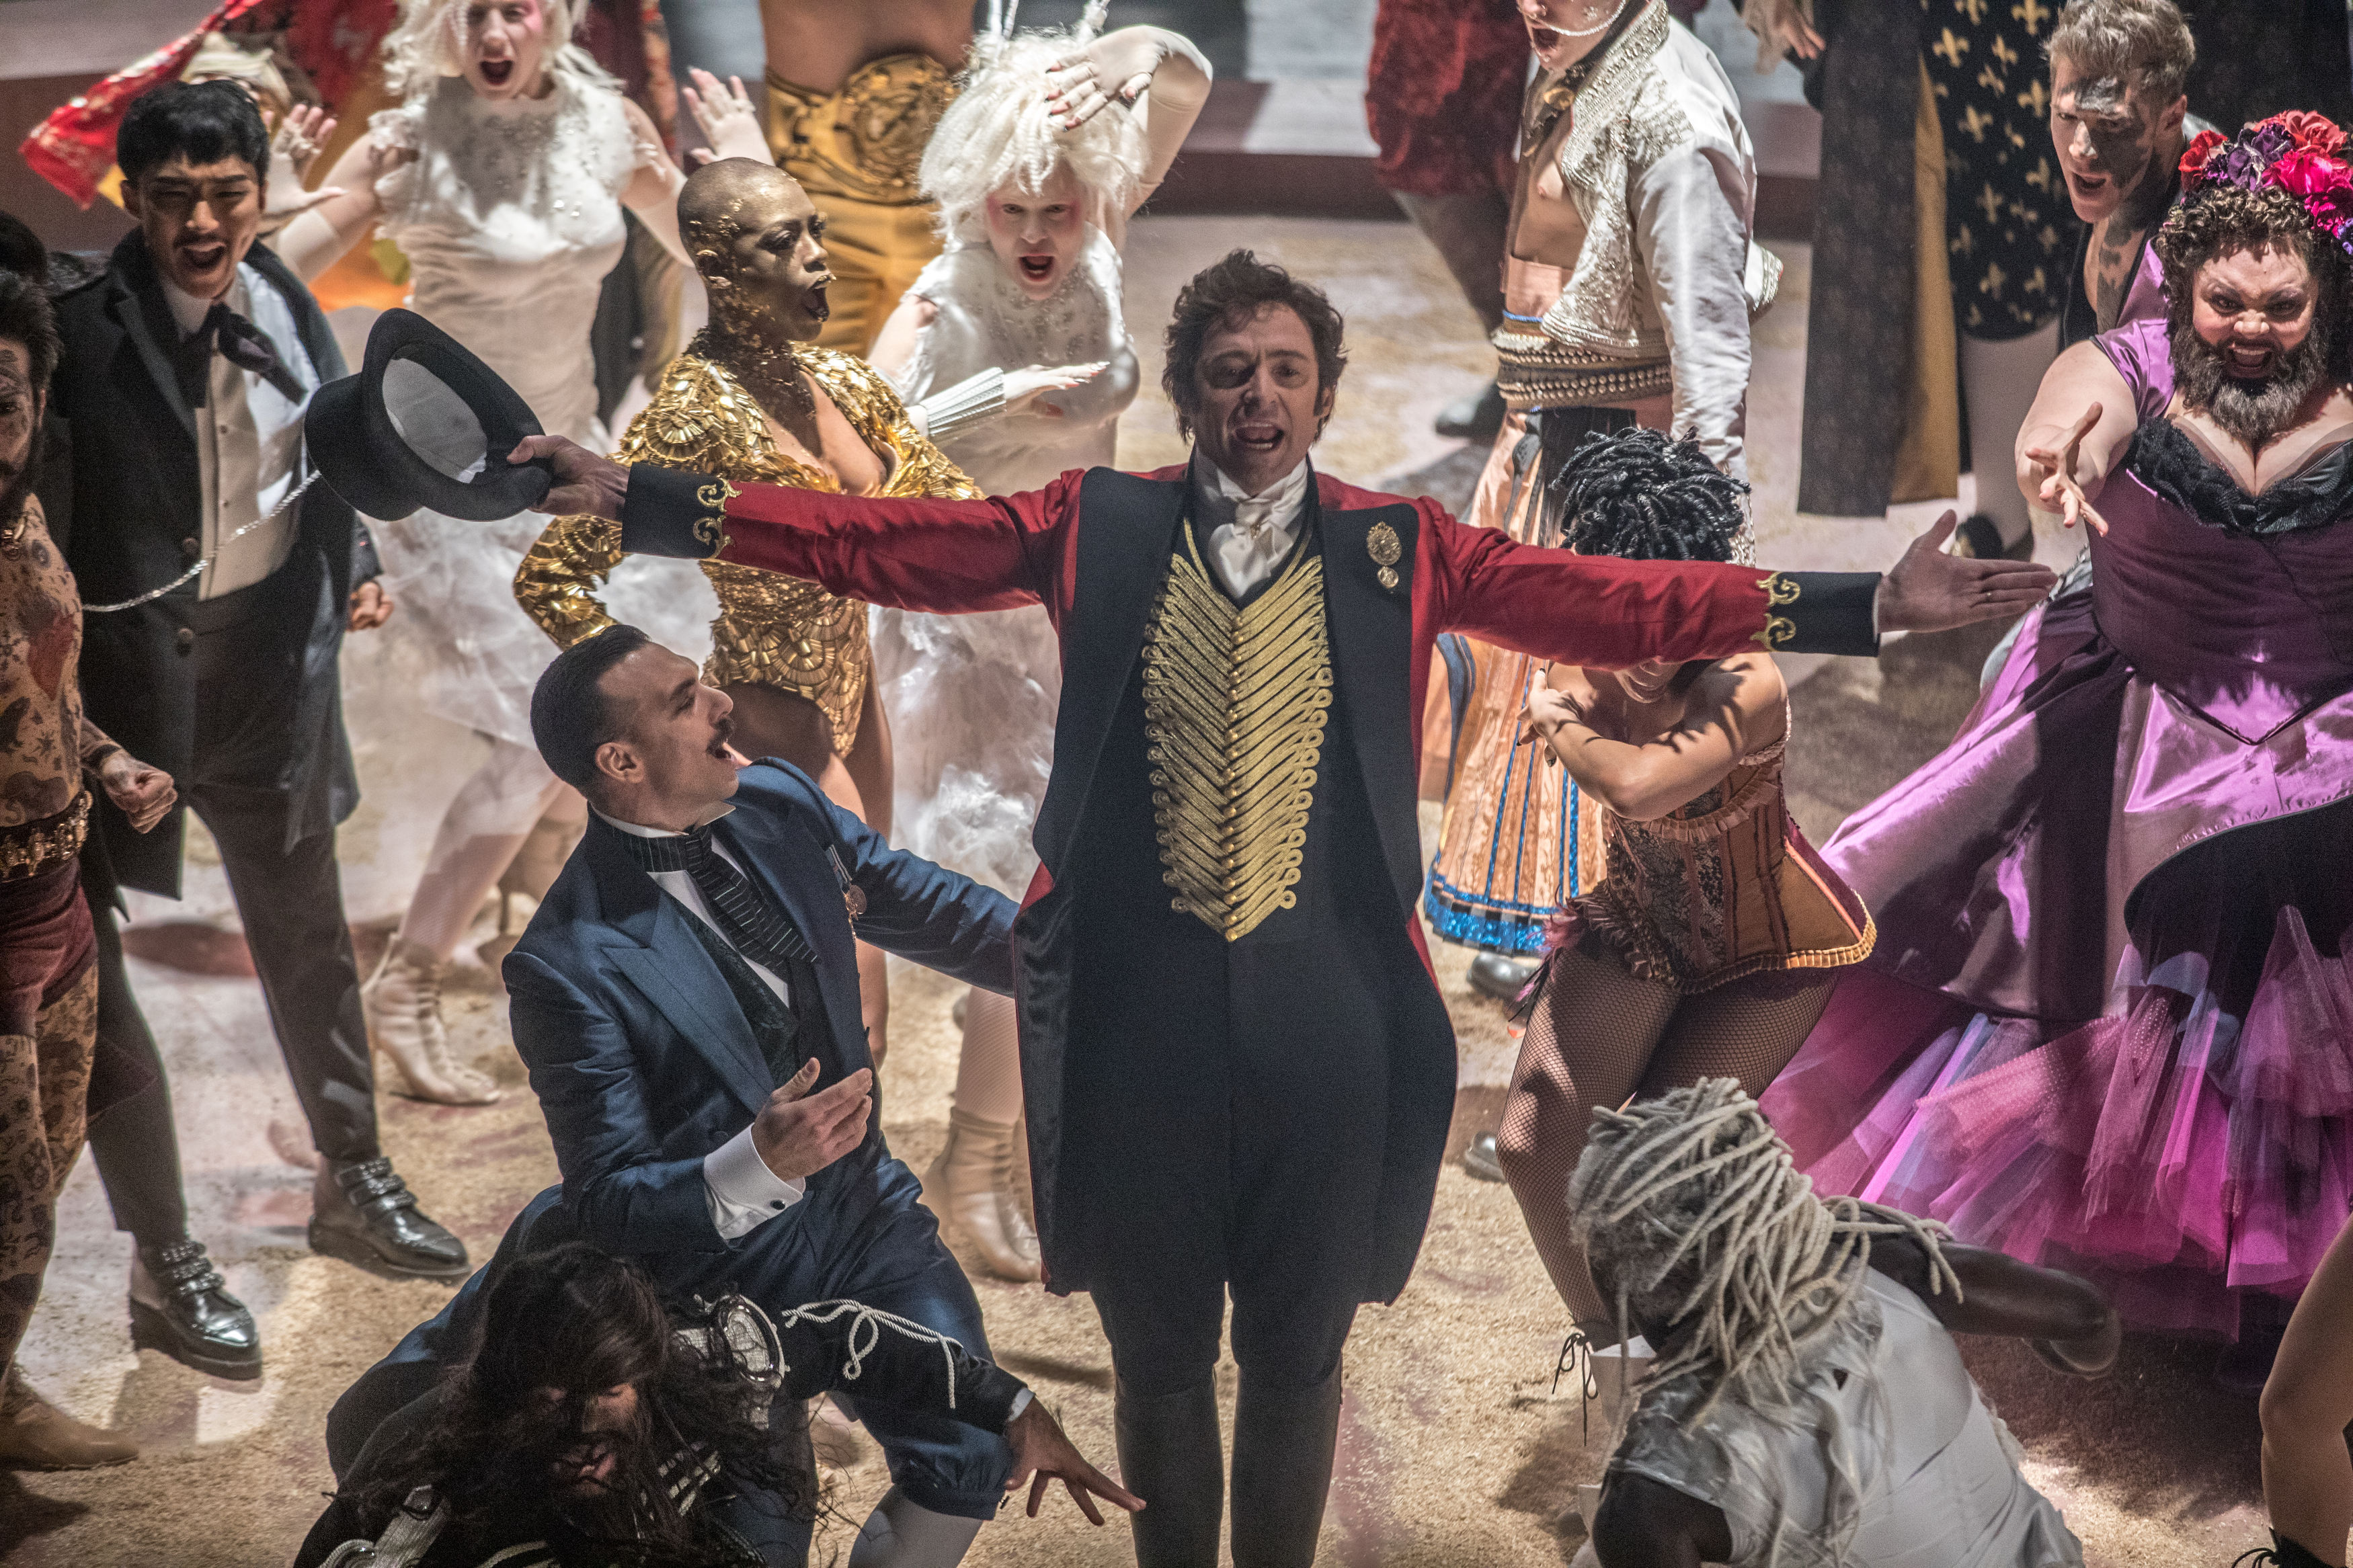 The Greatest Showman (PA Photo/Twentieth Century Fox Film Corporation/Niko Tavernise)